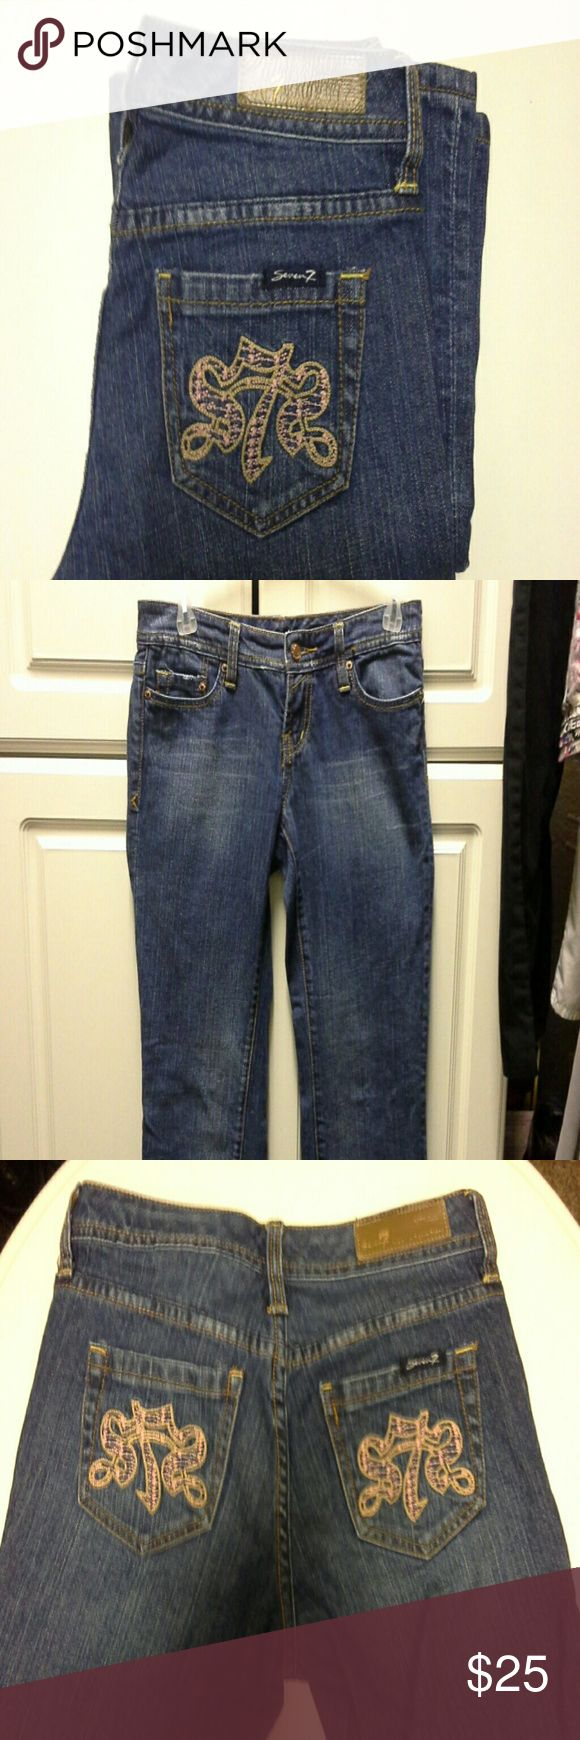 """Seven7 jeans Excellent condition.  Few small wear at bottom of jeans.  This is a reposh because it's small on me.  Length 33"""".  99 cotton, 1 spandex Seven7 Jeans"""